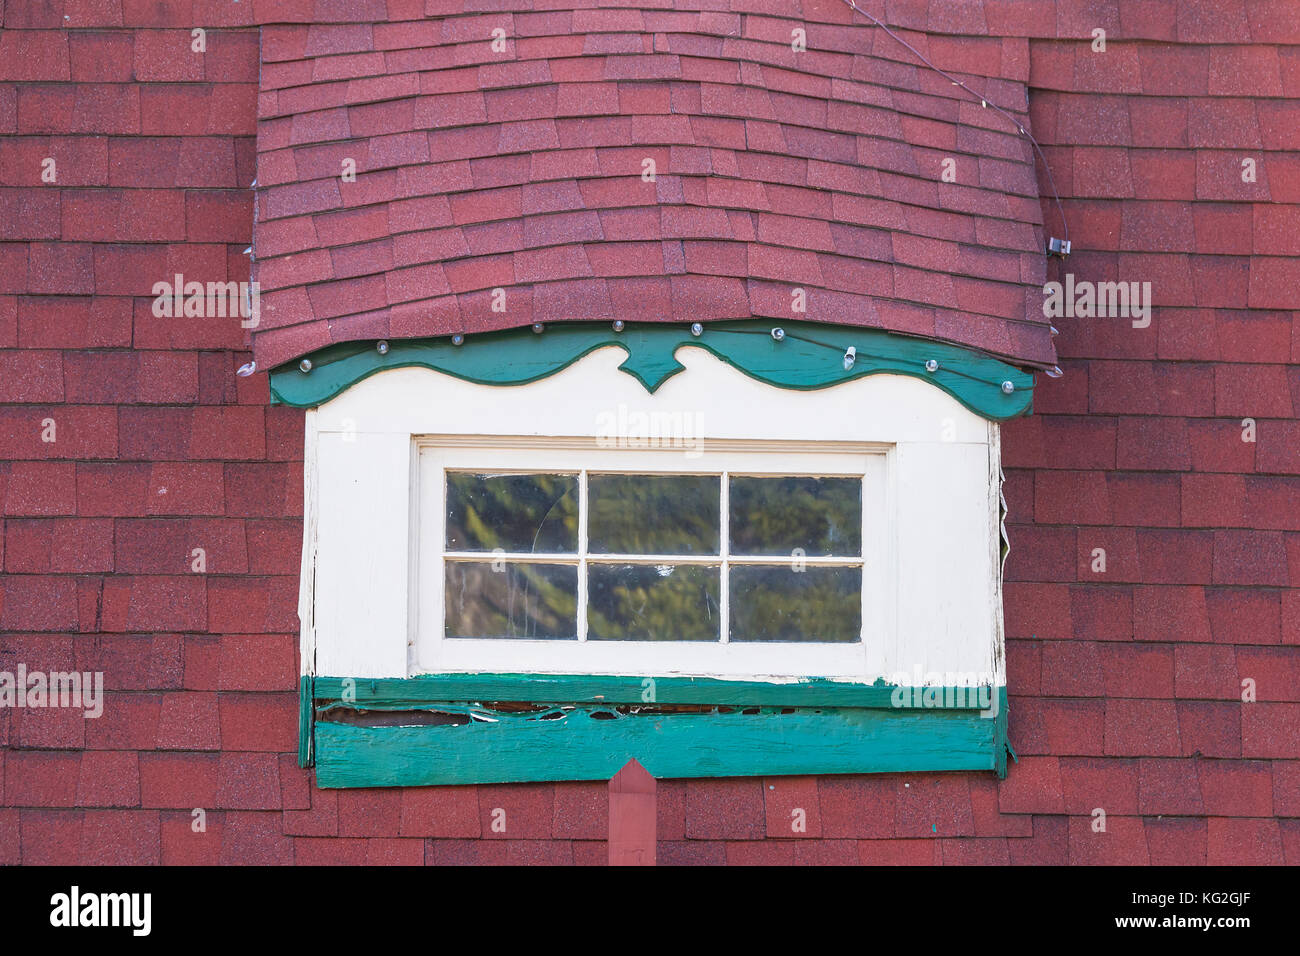 Wooden Frame Attic Stockfotos & Wooden Frame Attic Bilder - Alamy